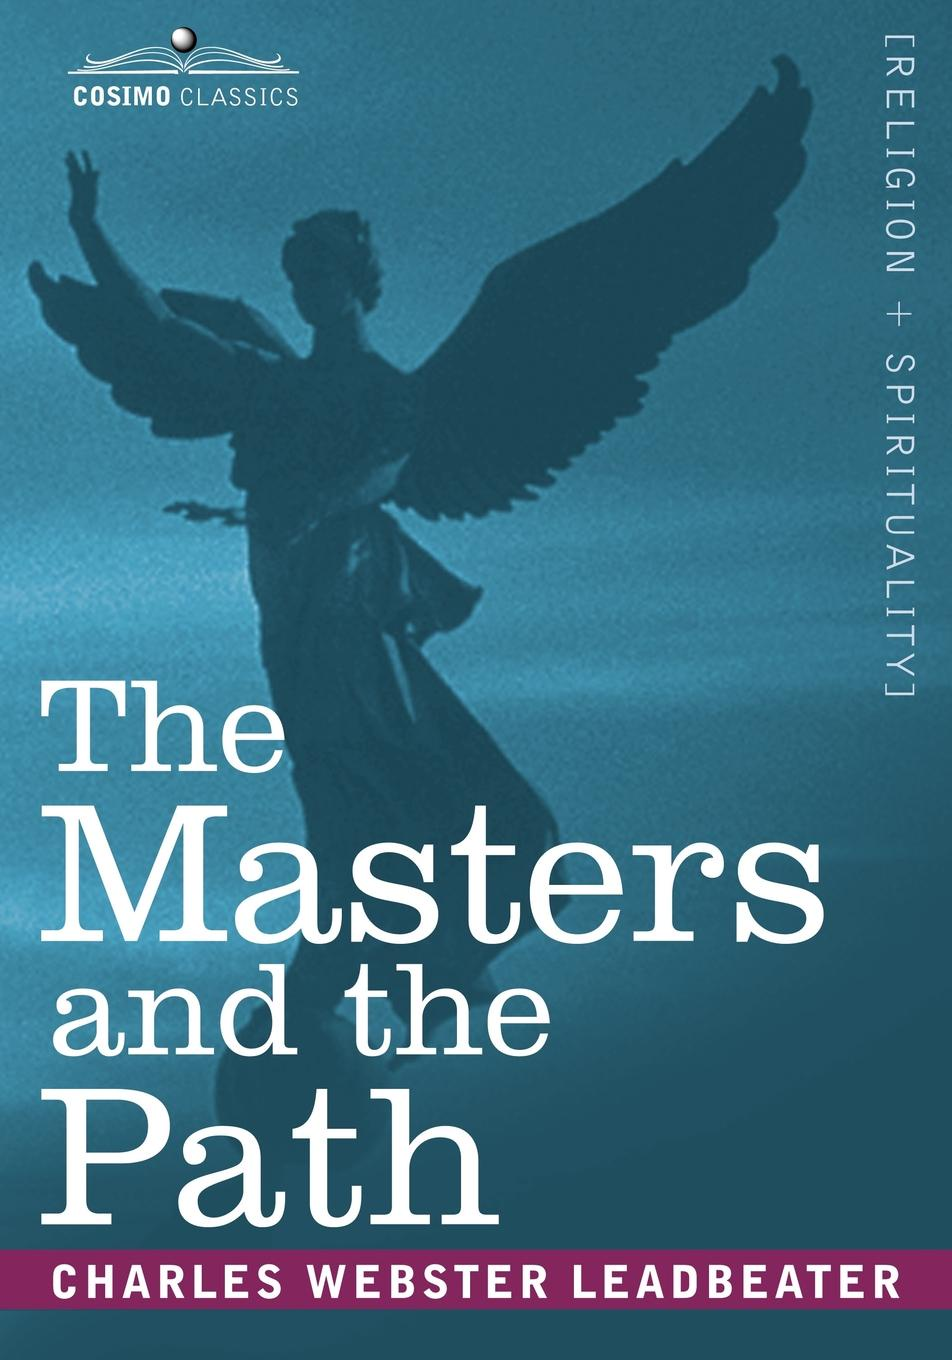 Charles Webster Leadbeater The Masters and the Path charles webster leadbeater secrets revealed clairvoyance magic and the reality of spirits